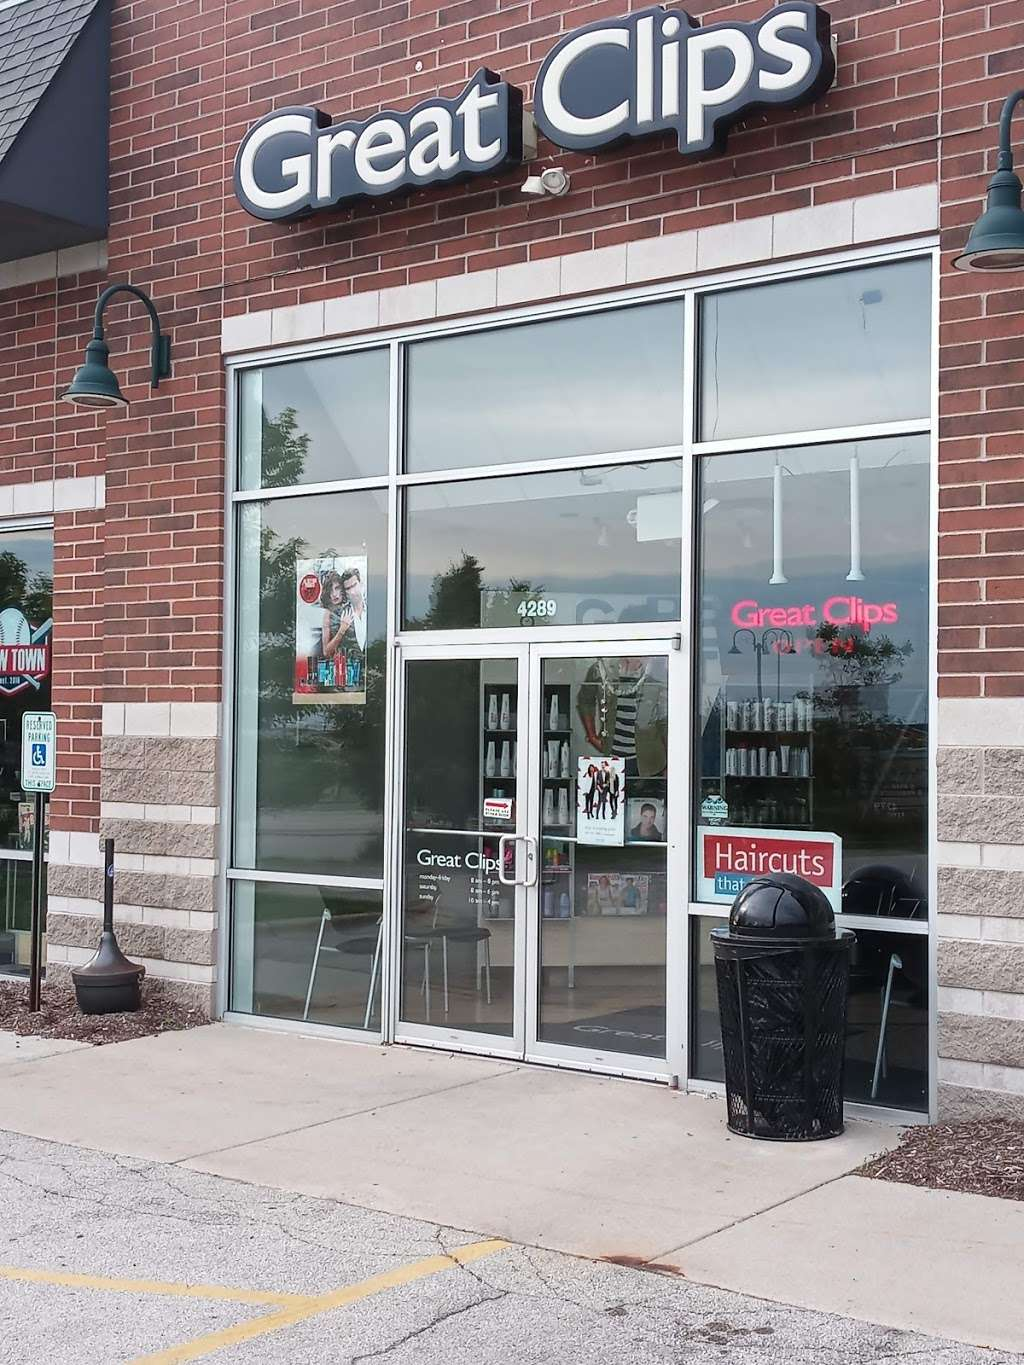 Great Clips - hair care  | Photo 2 of 9 | Address: 4289 S 76th St, Greenfield, WI 53220, USA | Phone: (414) 546-9000